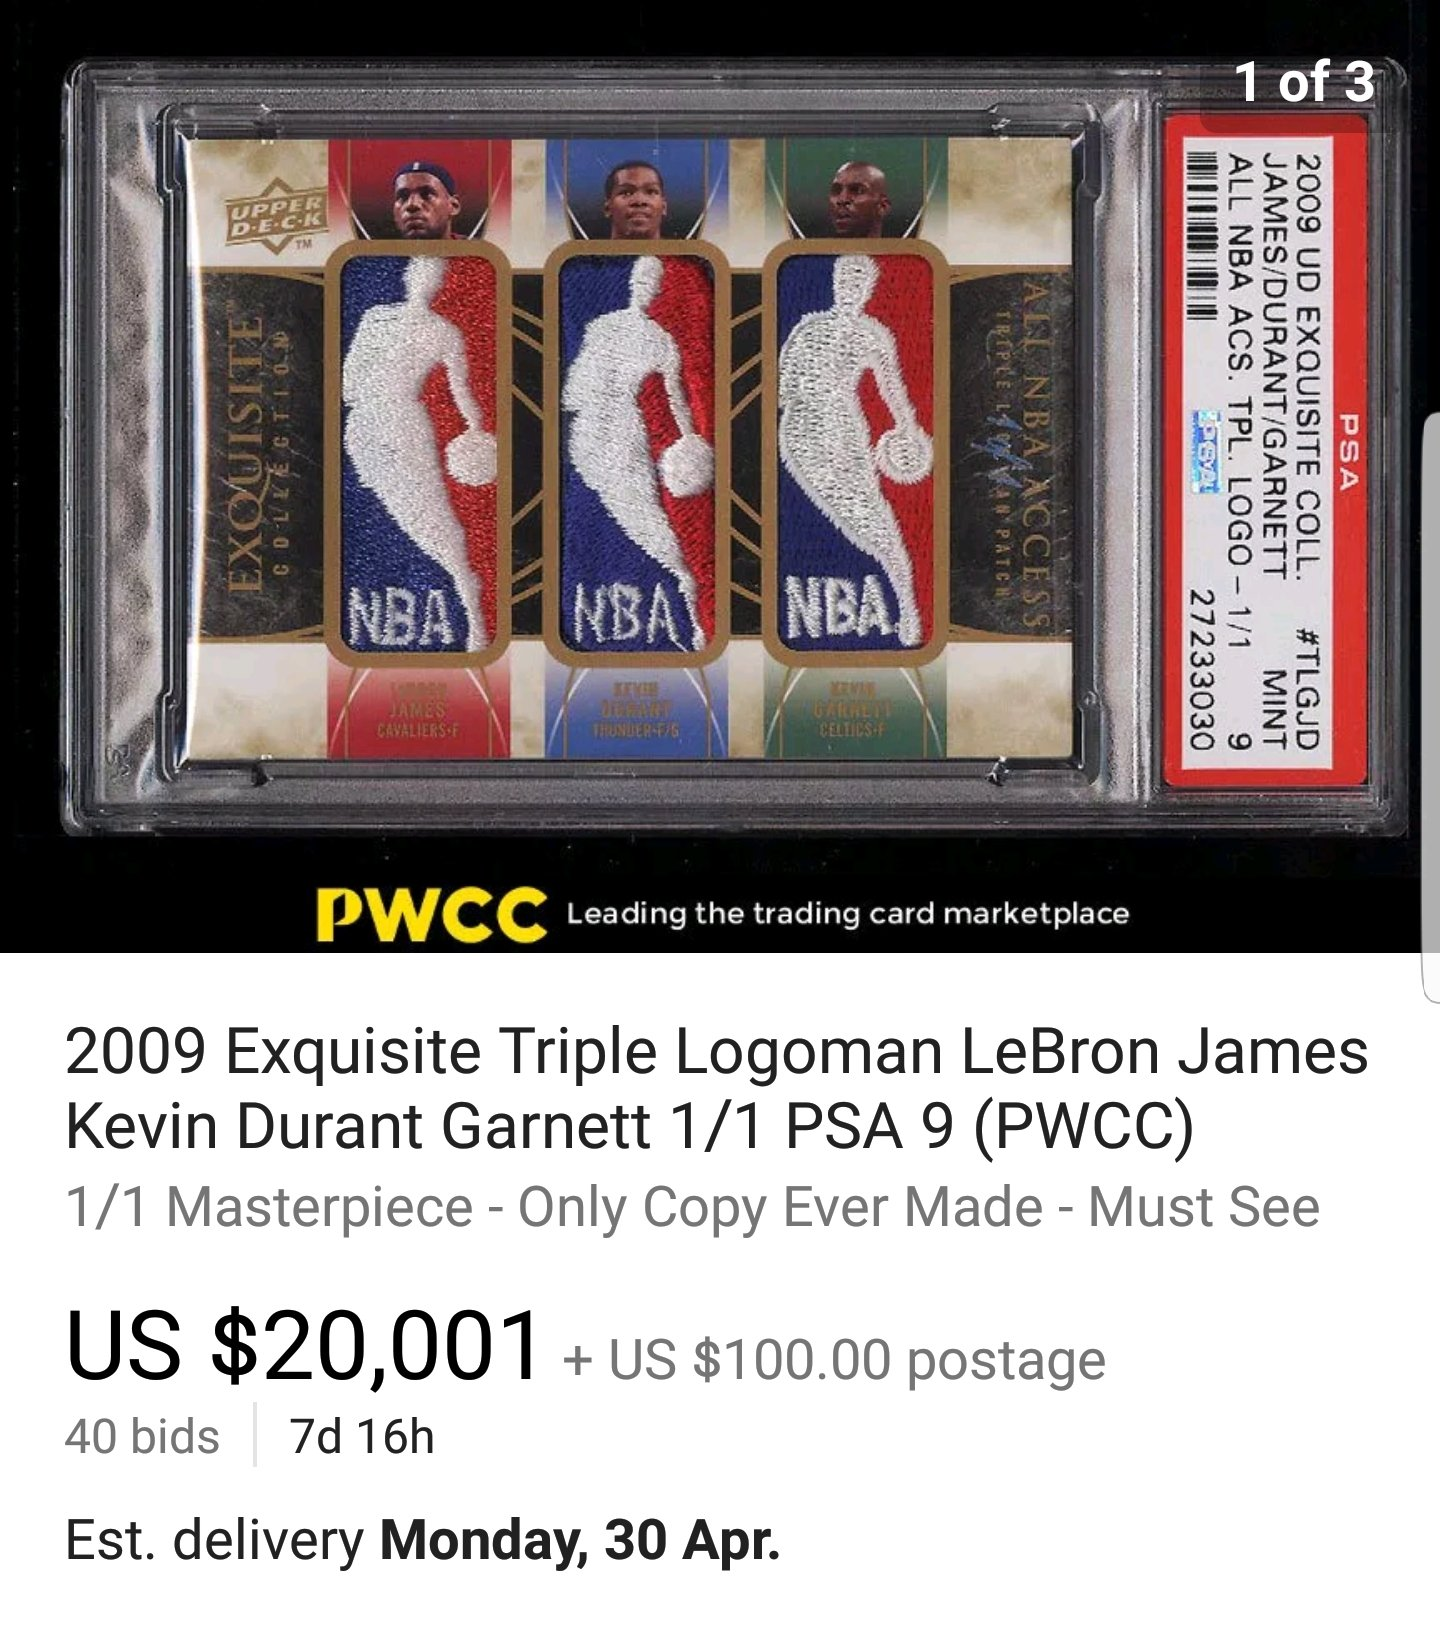 low priced e721c 25698 Jaw Dropping LeBron James Cards on eBay | 130 Point